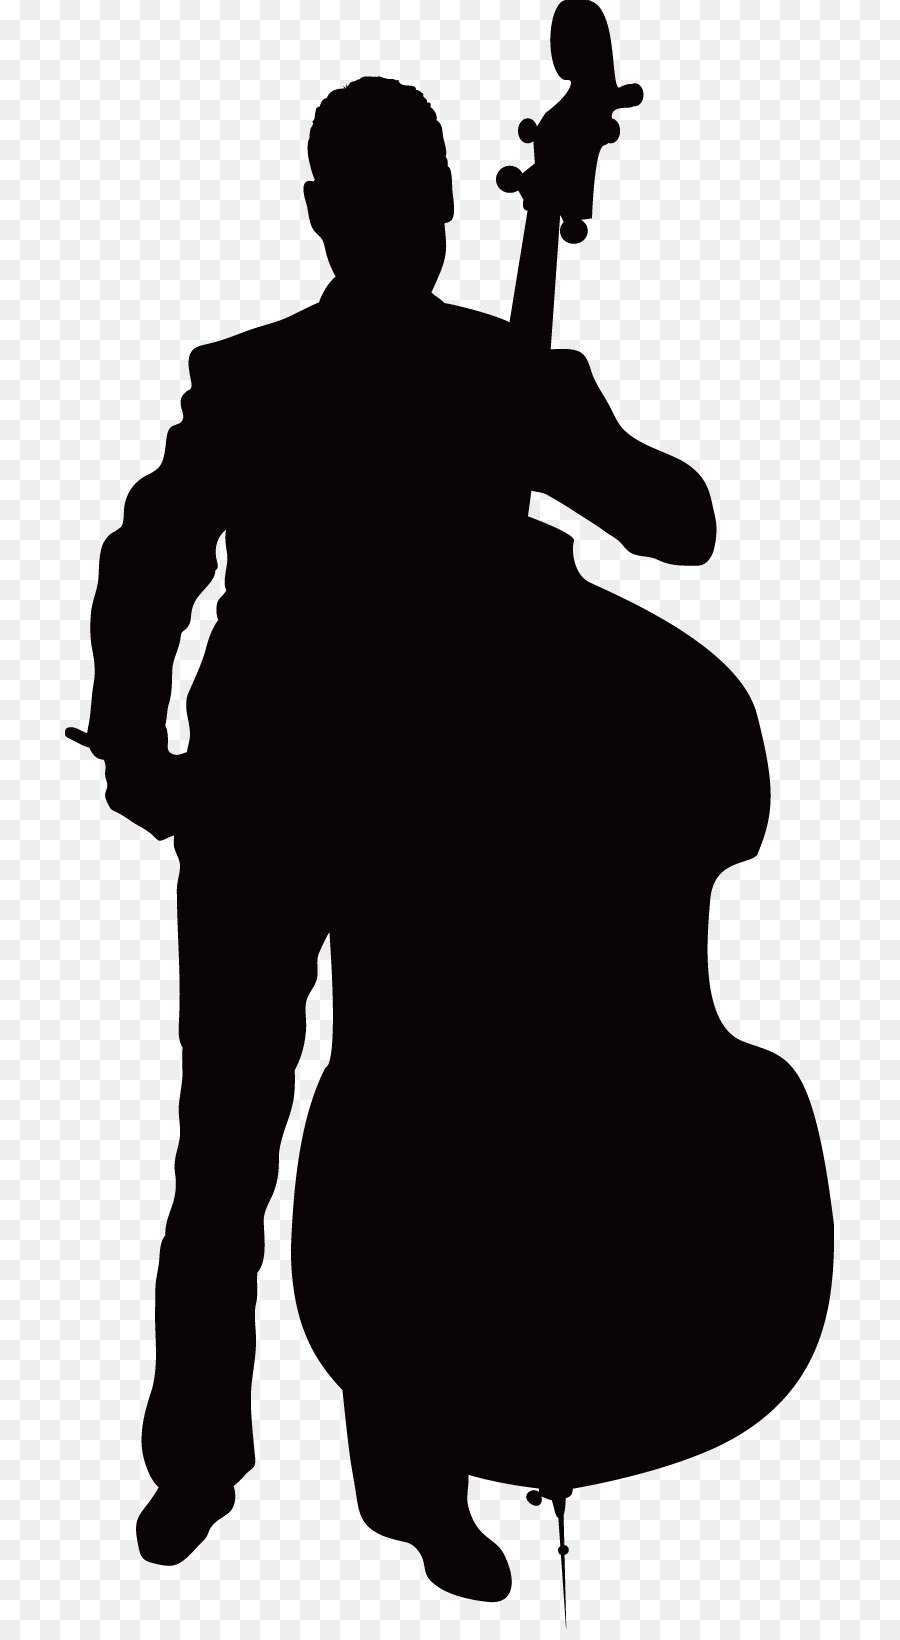 Cello clipart silhouette. Violin clip art at